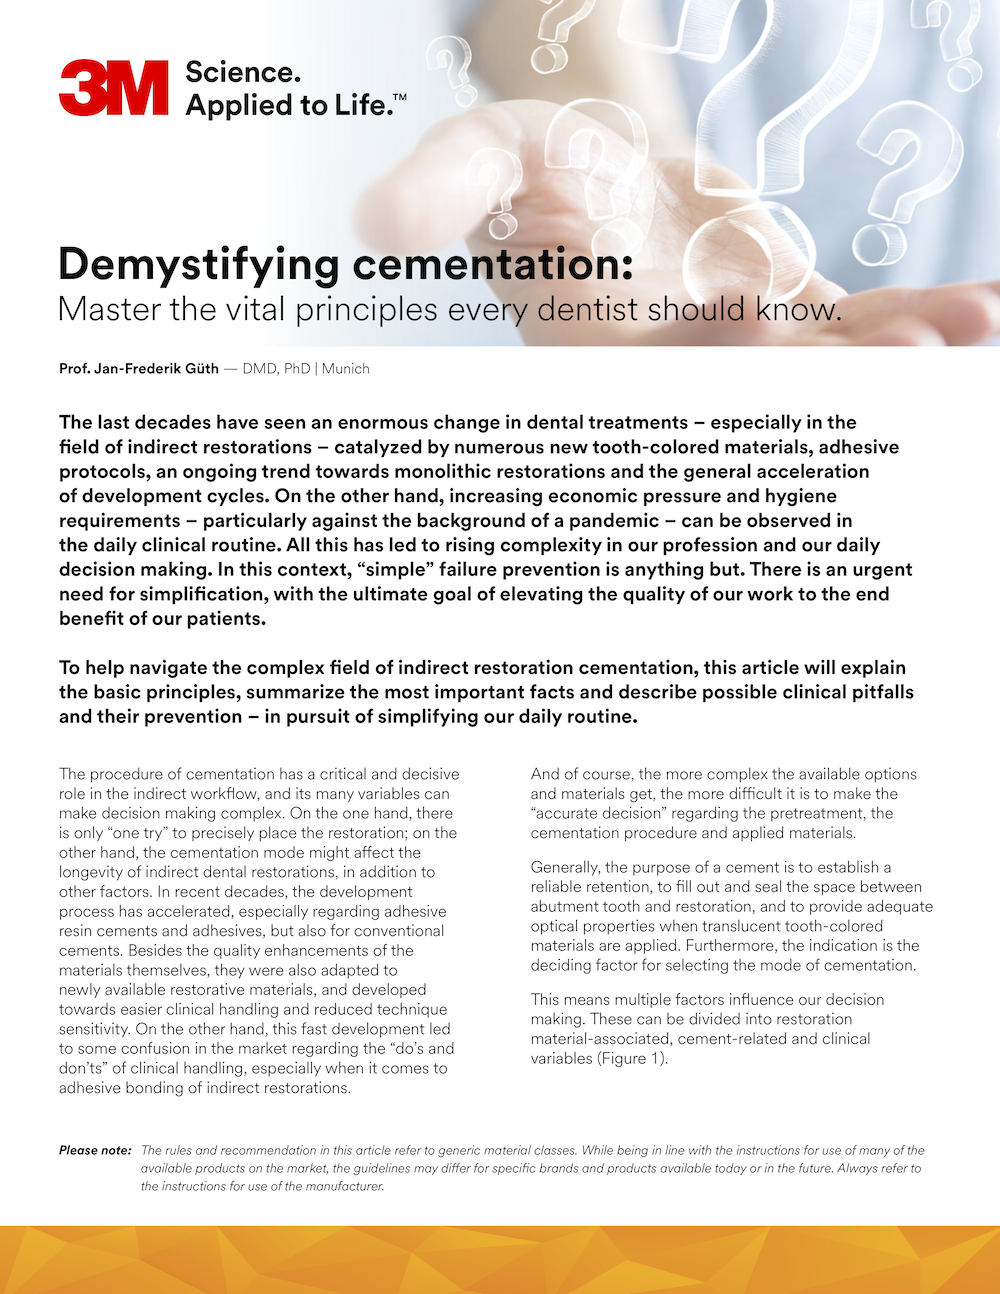 Demystifying_Cementation_White_Paper_70201373324